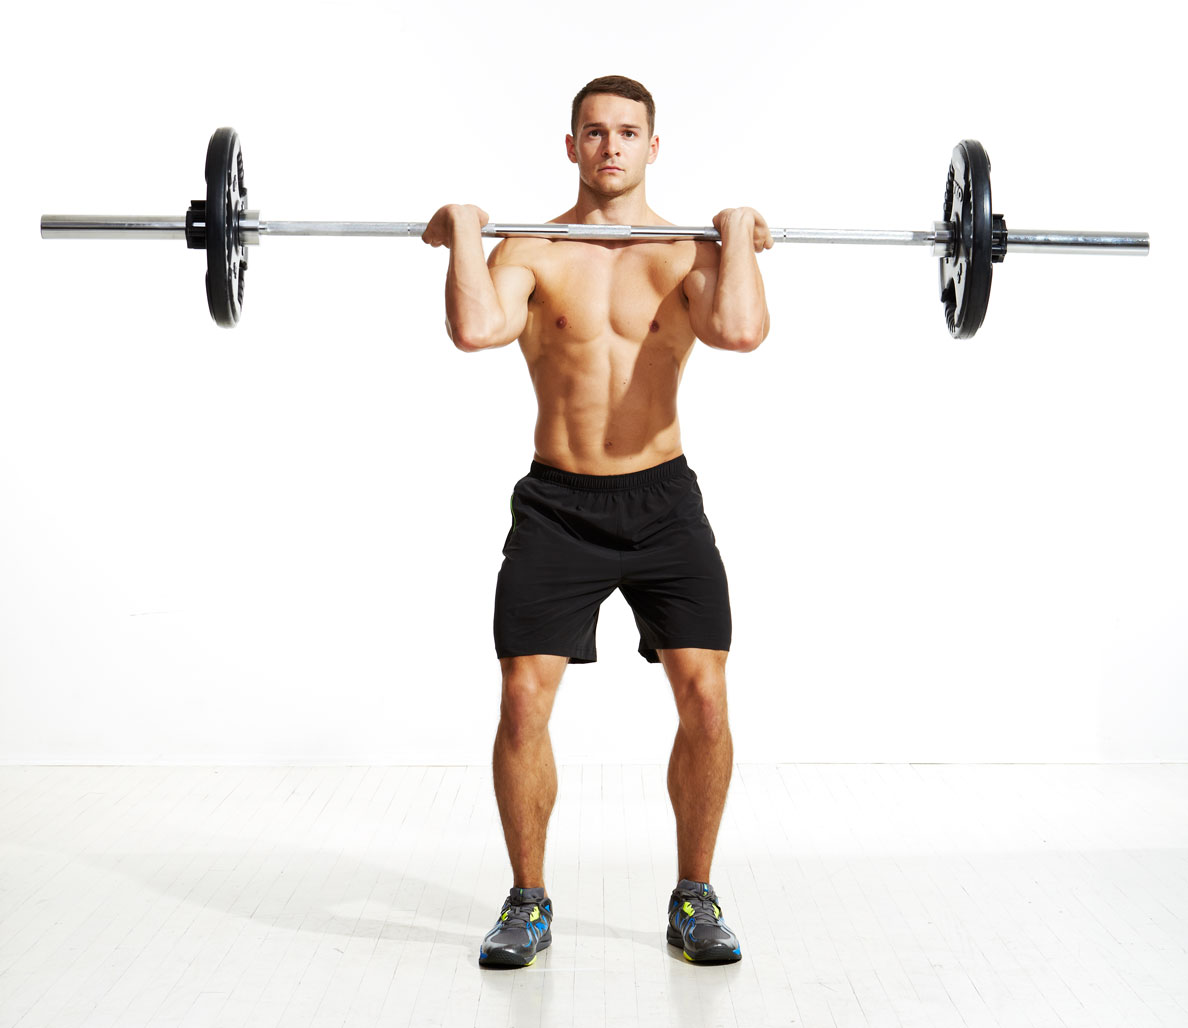 Weight Lifting Gym Fitness Workout Exercise Training Body: The 5 Best Barbell Complex Workout To Burn Fat And Build